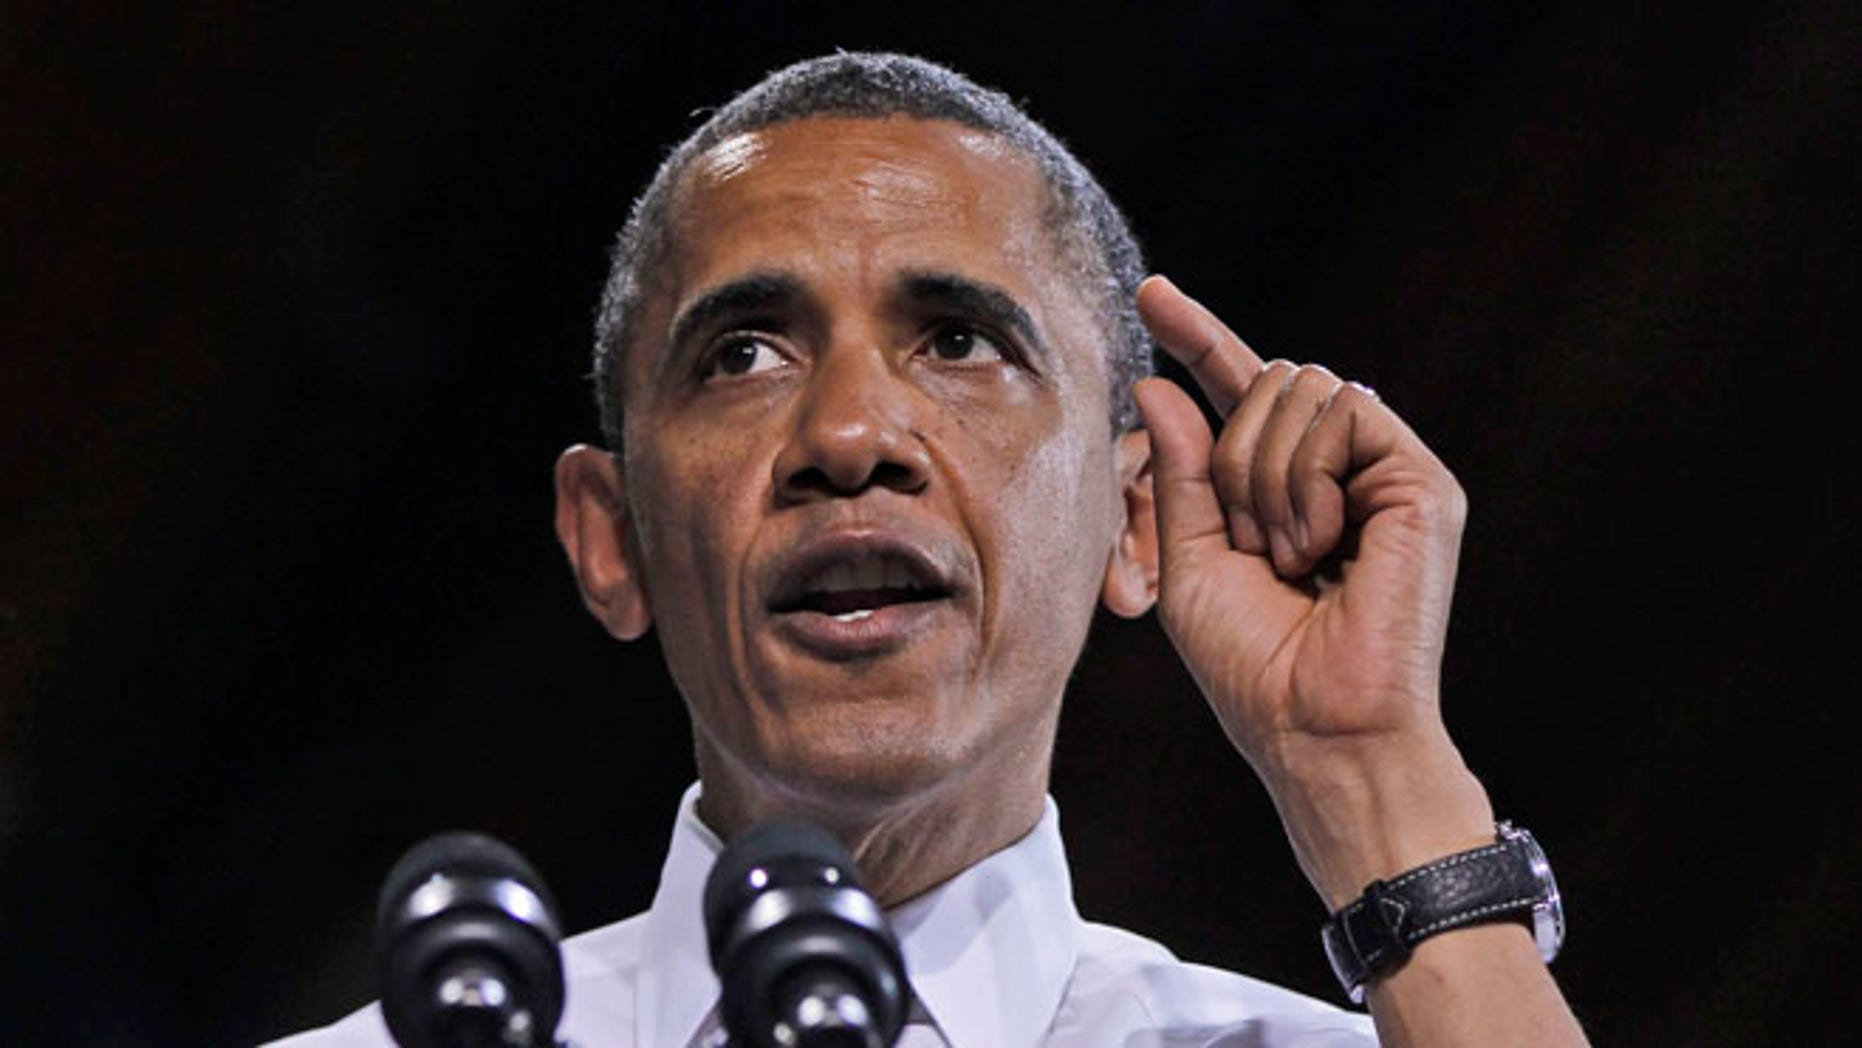 May 24, 2012: President Obama speaks during a campaign rally in Des Moines, Iowa.